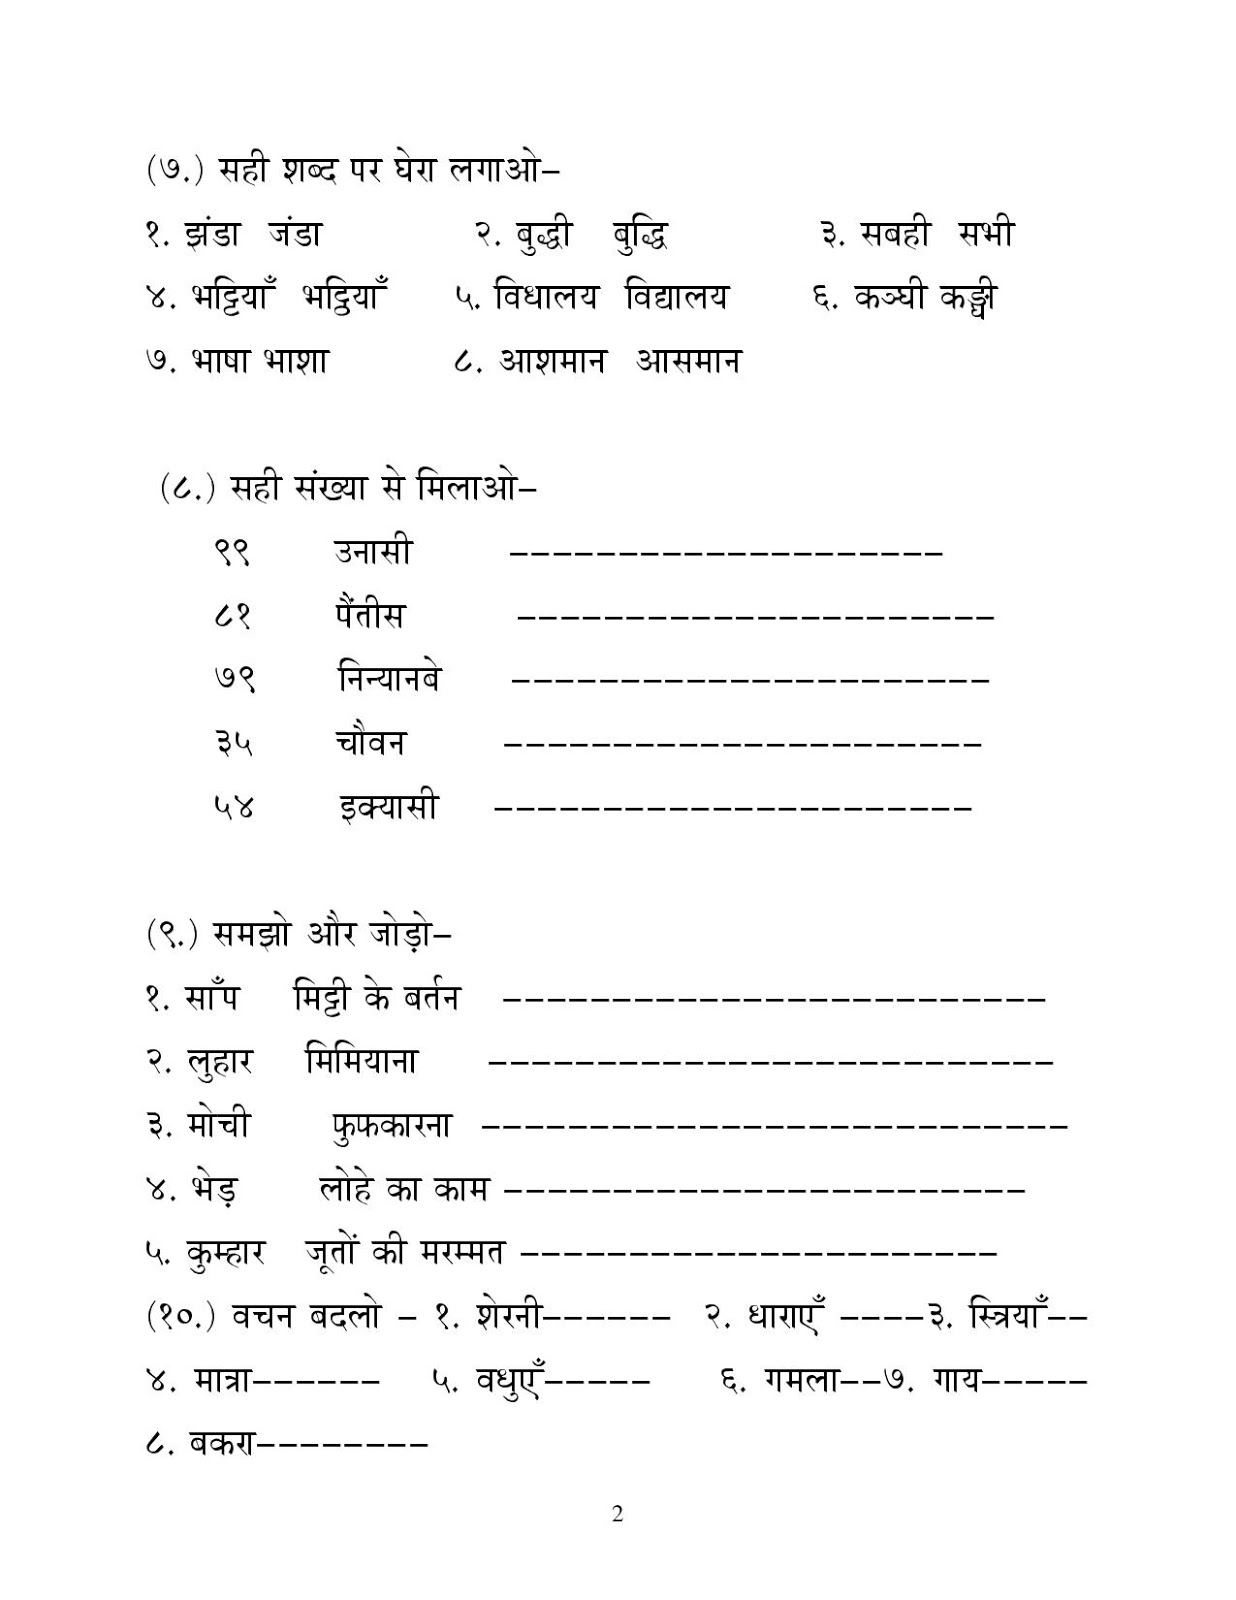 medium resolution of Hindi Worksheets For Grade 2 Cbse   Printable Worksheets and Activities for  Teachers